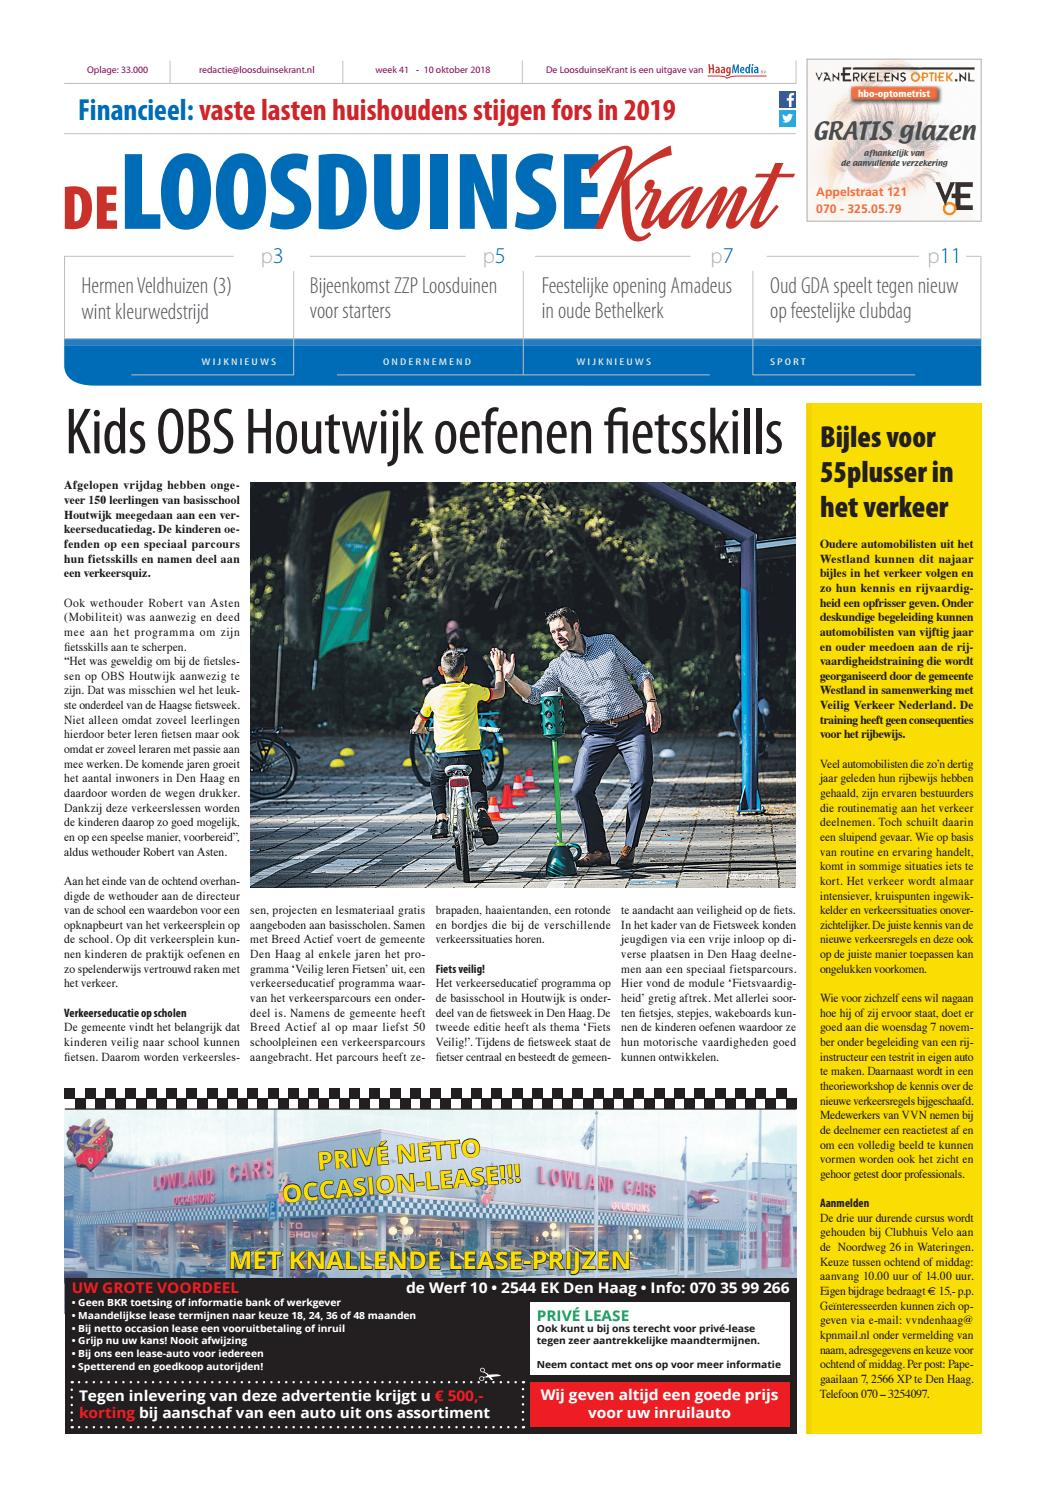 Deloosduinsekrant Week 41 2018 By Haagmedia Issuu